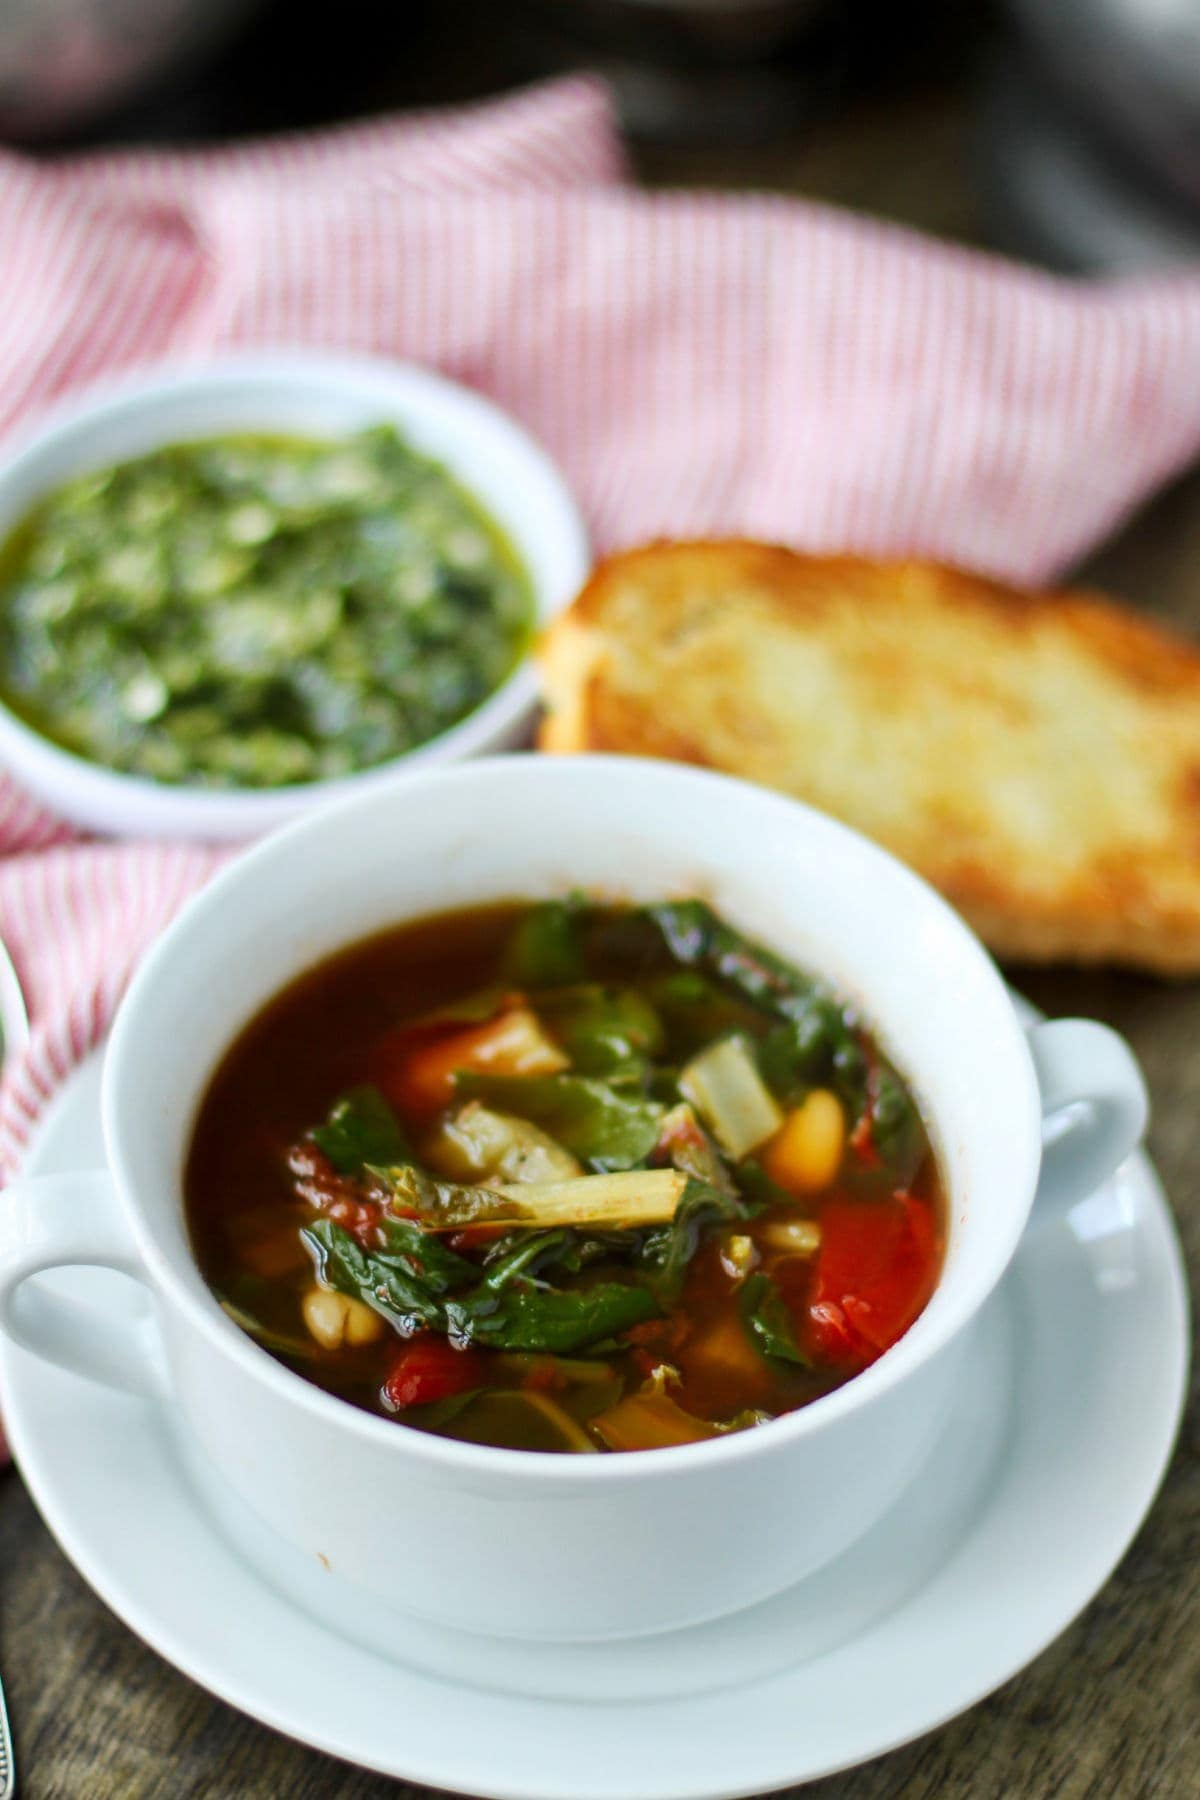 Swish chard soup in bowls.